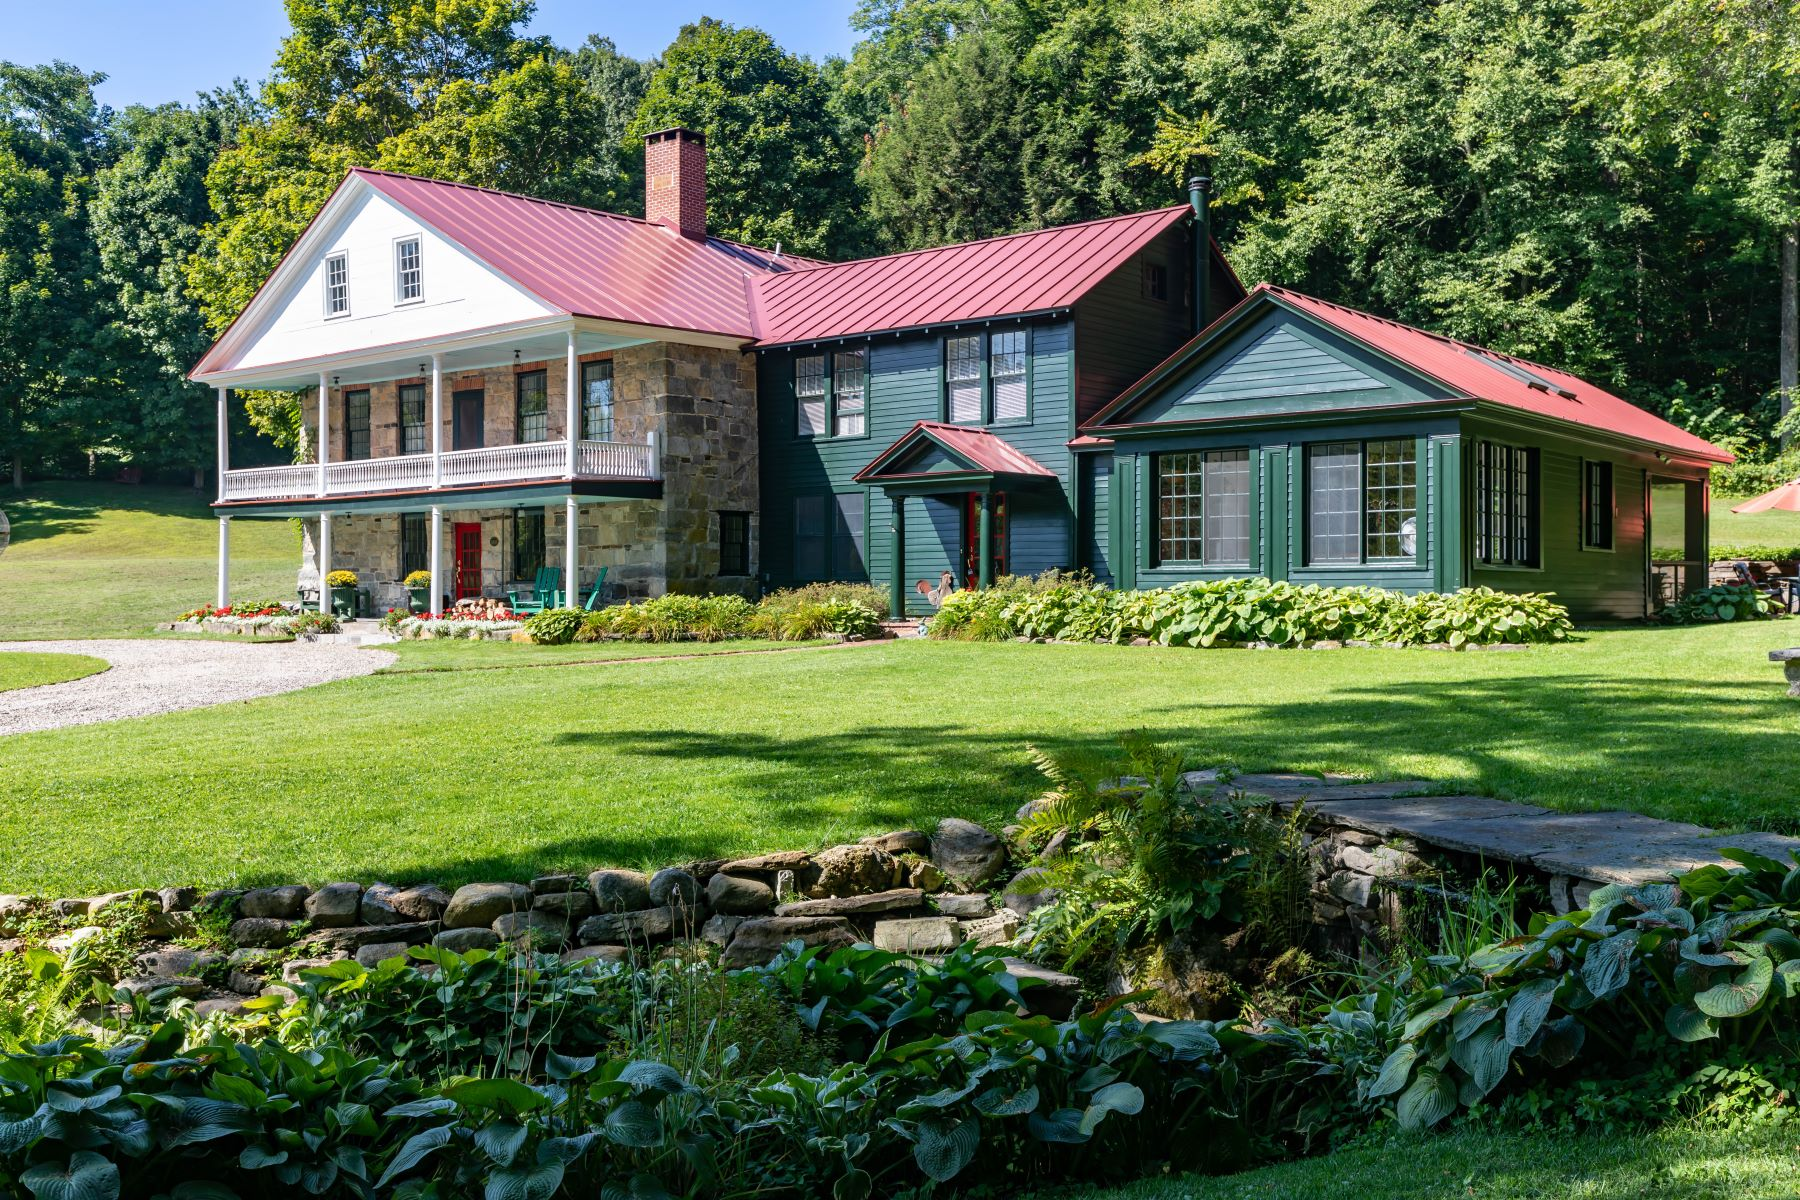 Single Family Homes for Sale at Beautifully Updated Historic Renovation 136 Parkhurst Rd. Gansevoort, New York 12831 United States